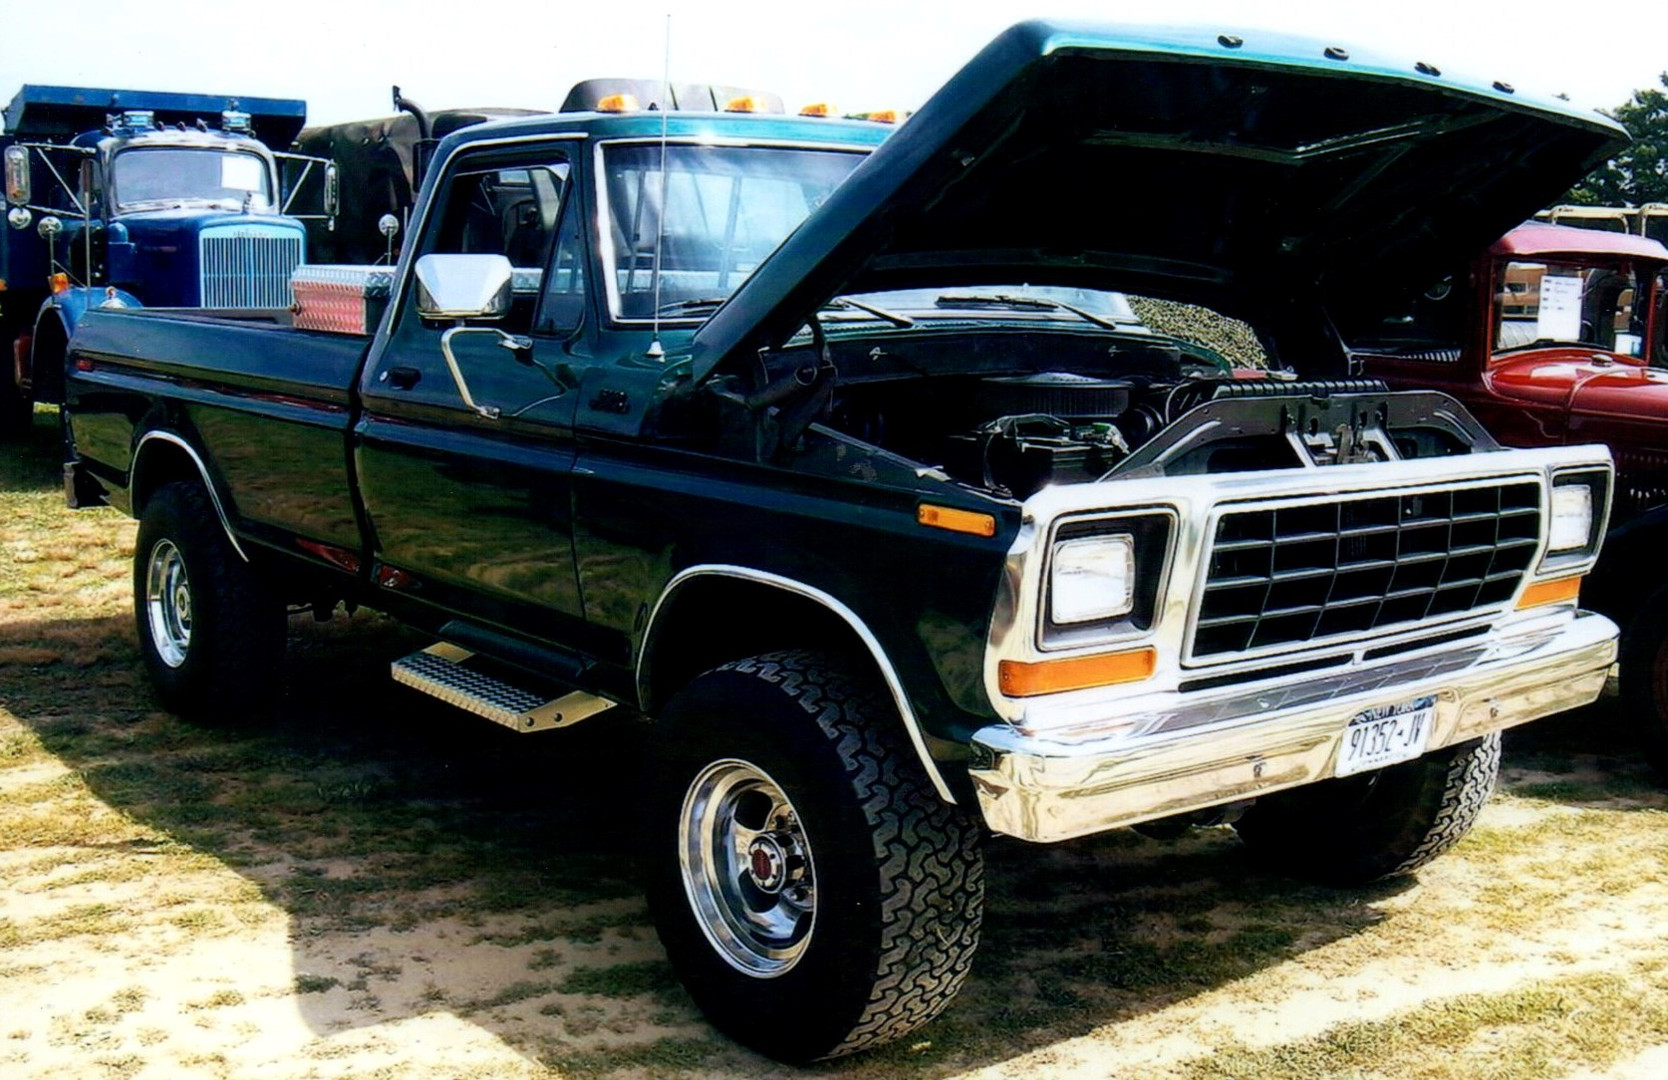 1979 Ford F-350 pickup - Chester Dlugolecki